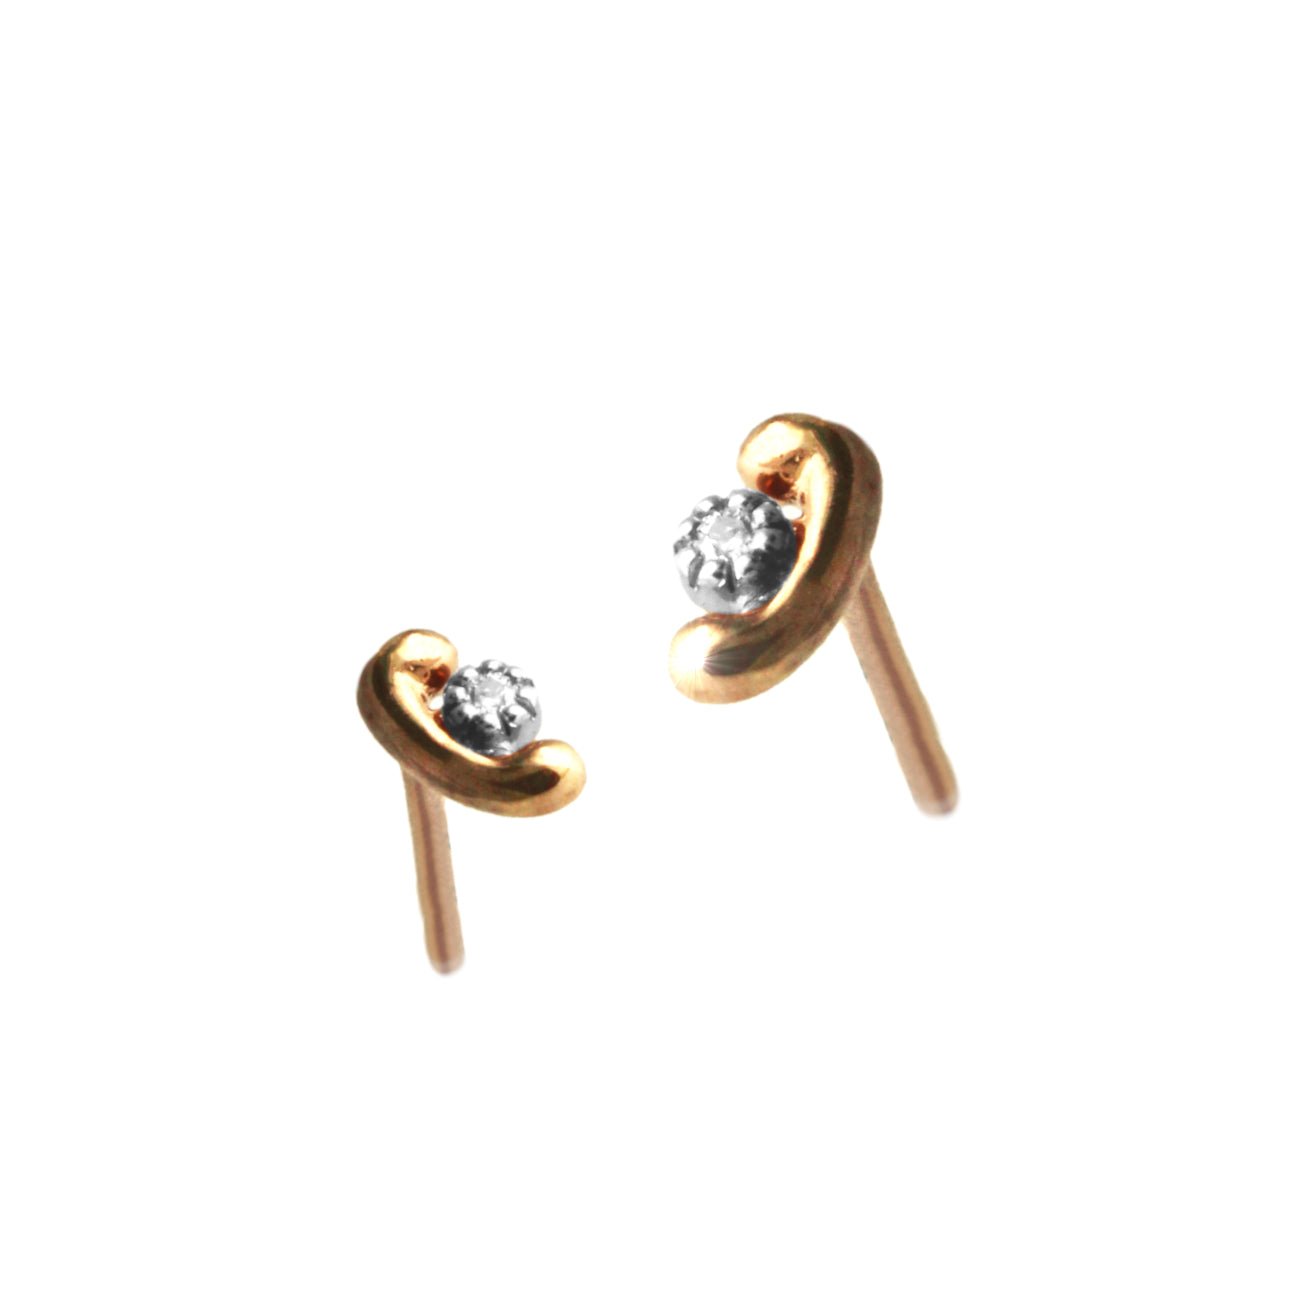 Sophisticated Rose Gold Earrings